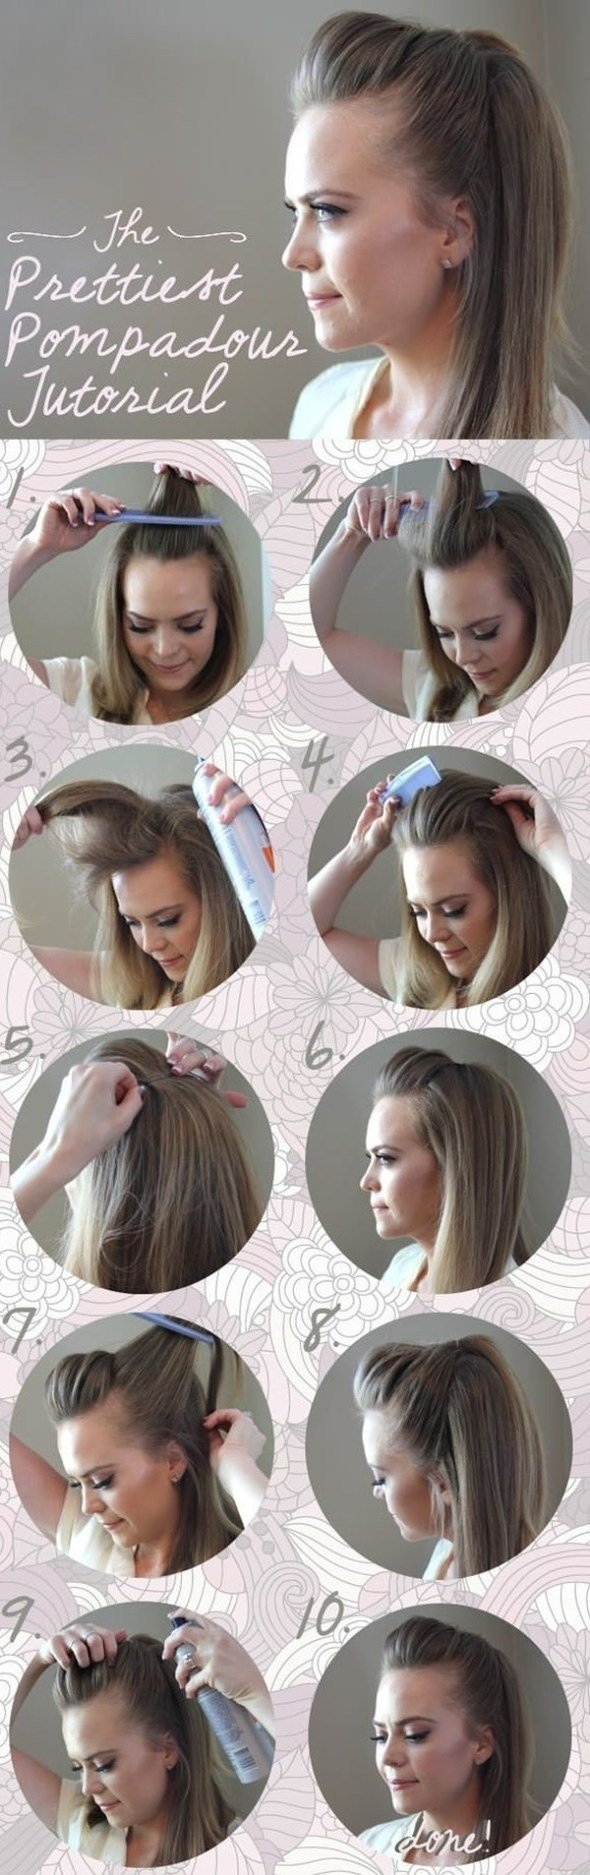 New 13 Five Minute Hairstyles For School Stylequick Ideas With Pictures